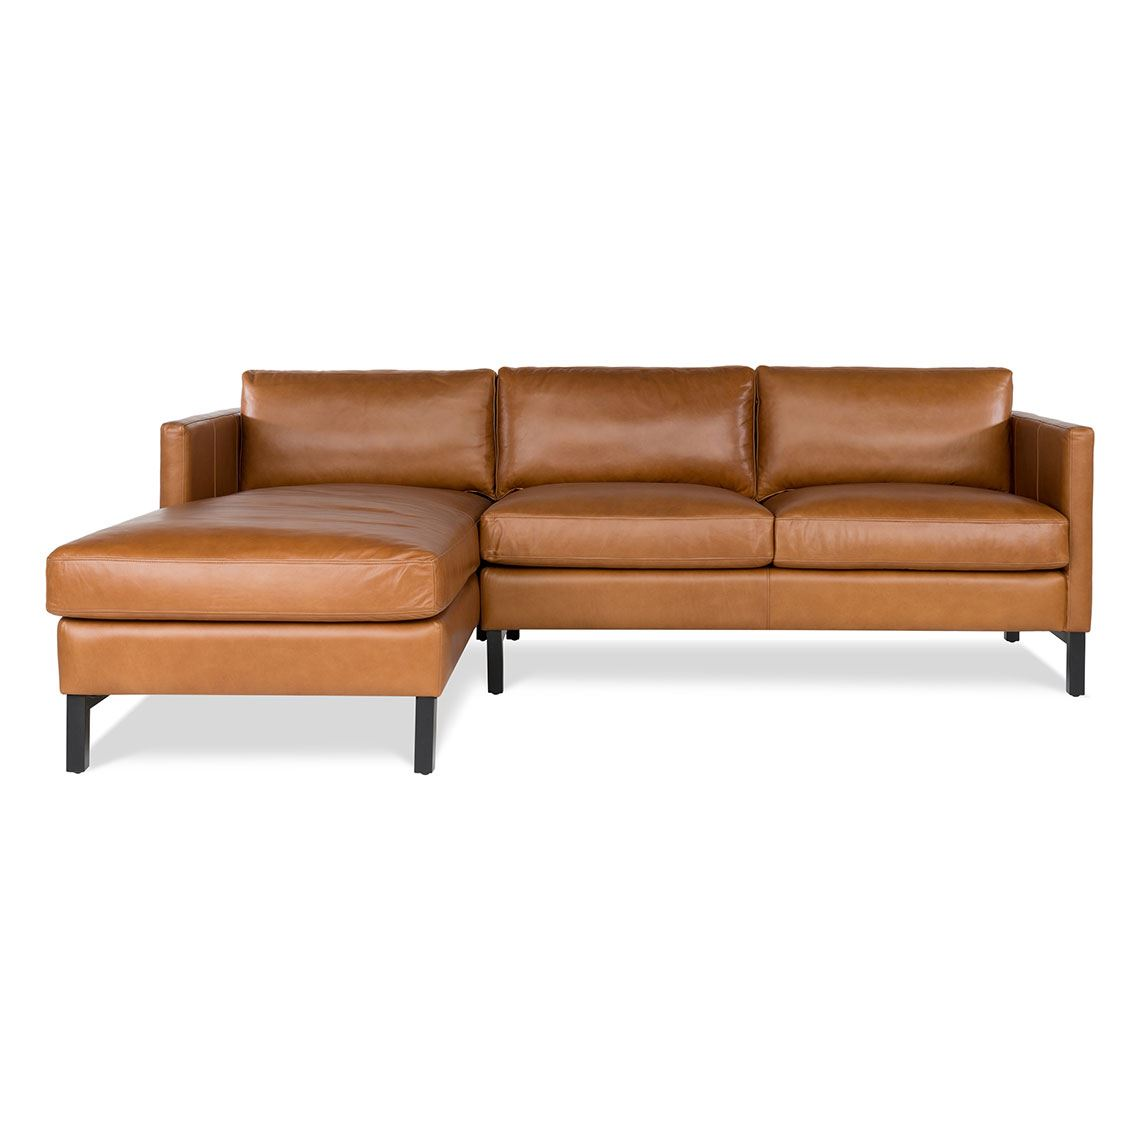 Atelier 2 Seat Leather Modular Sofa With Left Chaise Saddle ...